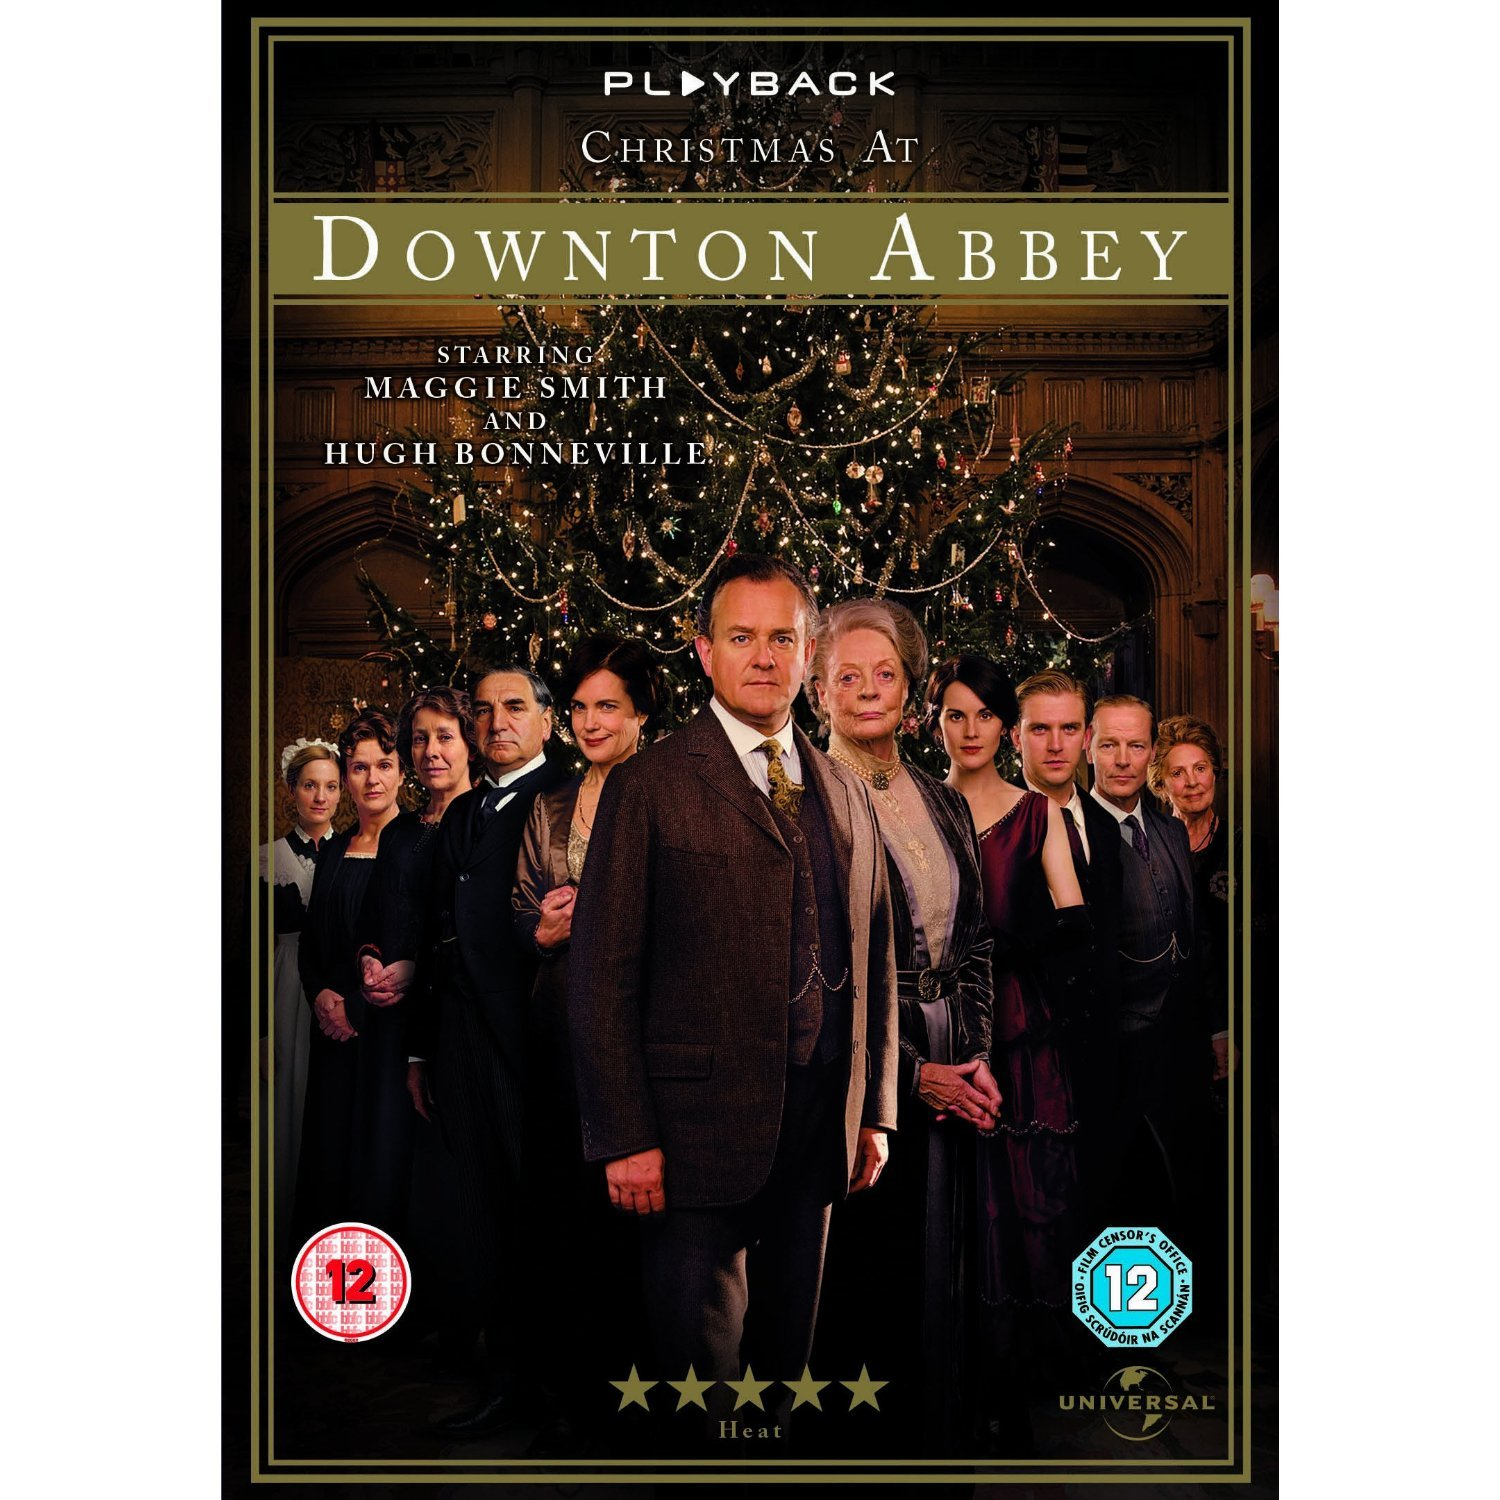 Amazon.com: Christmas At Downton Abbey [Will NOT Play on USA Players ...